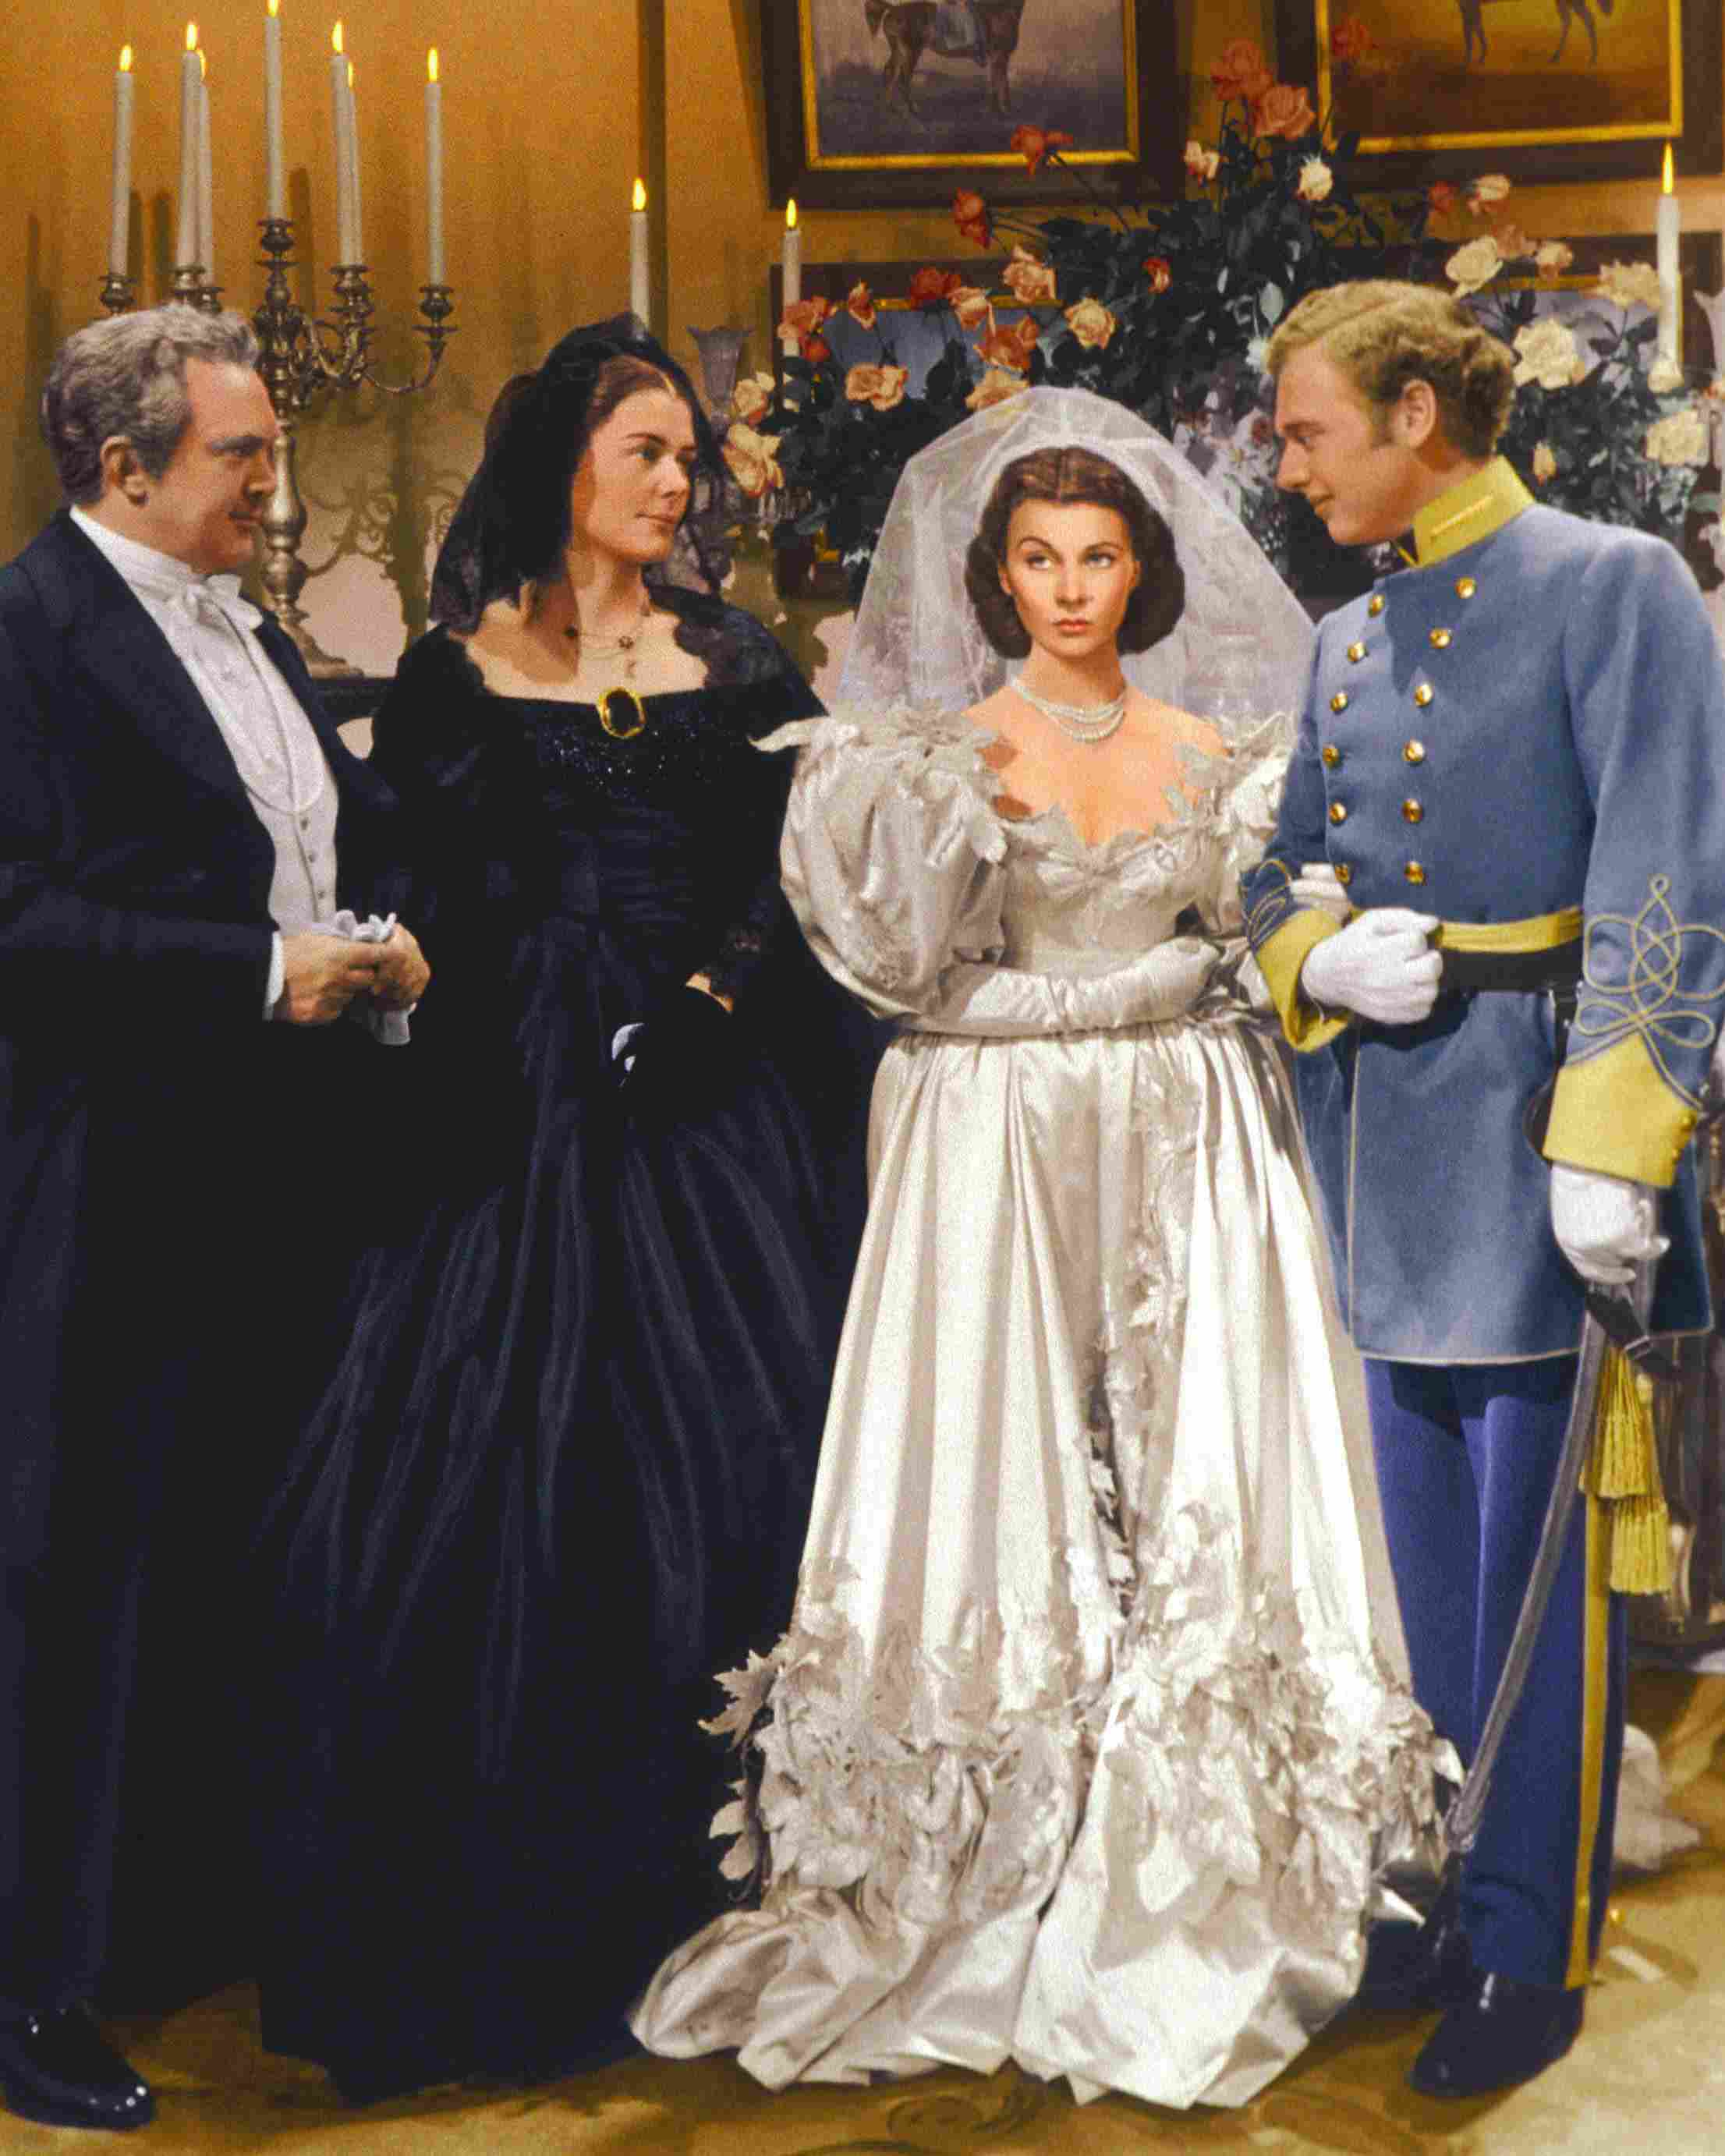 scarlett o'hara's gone with the wind gowns